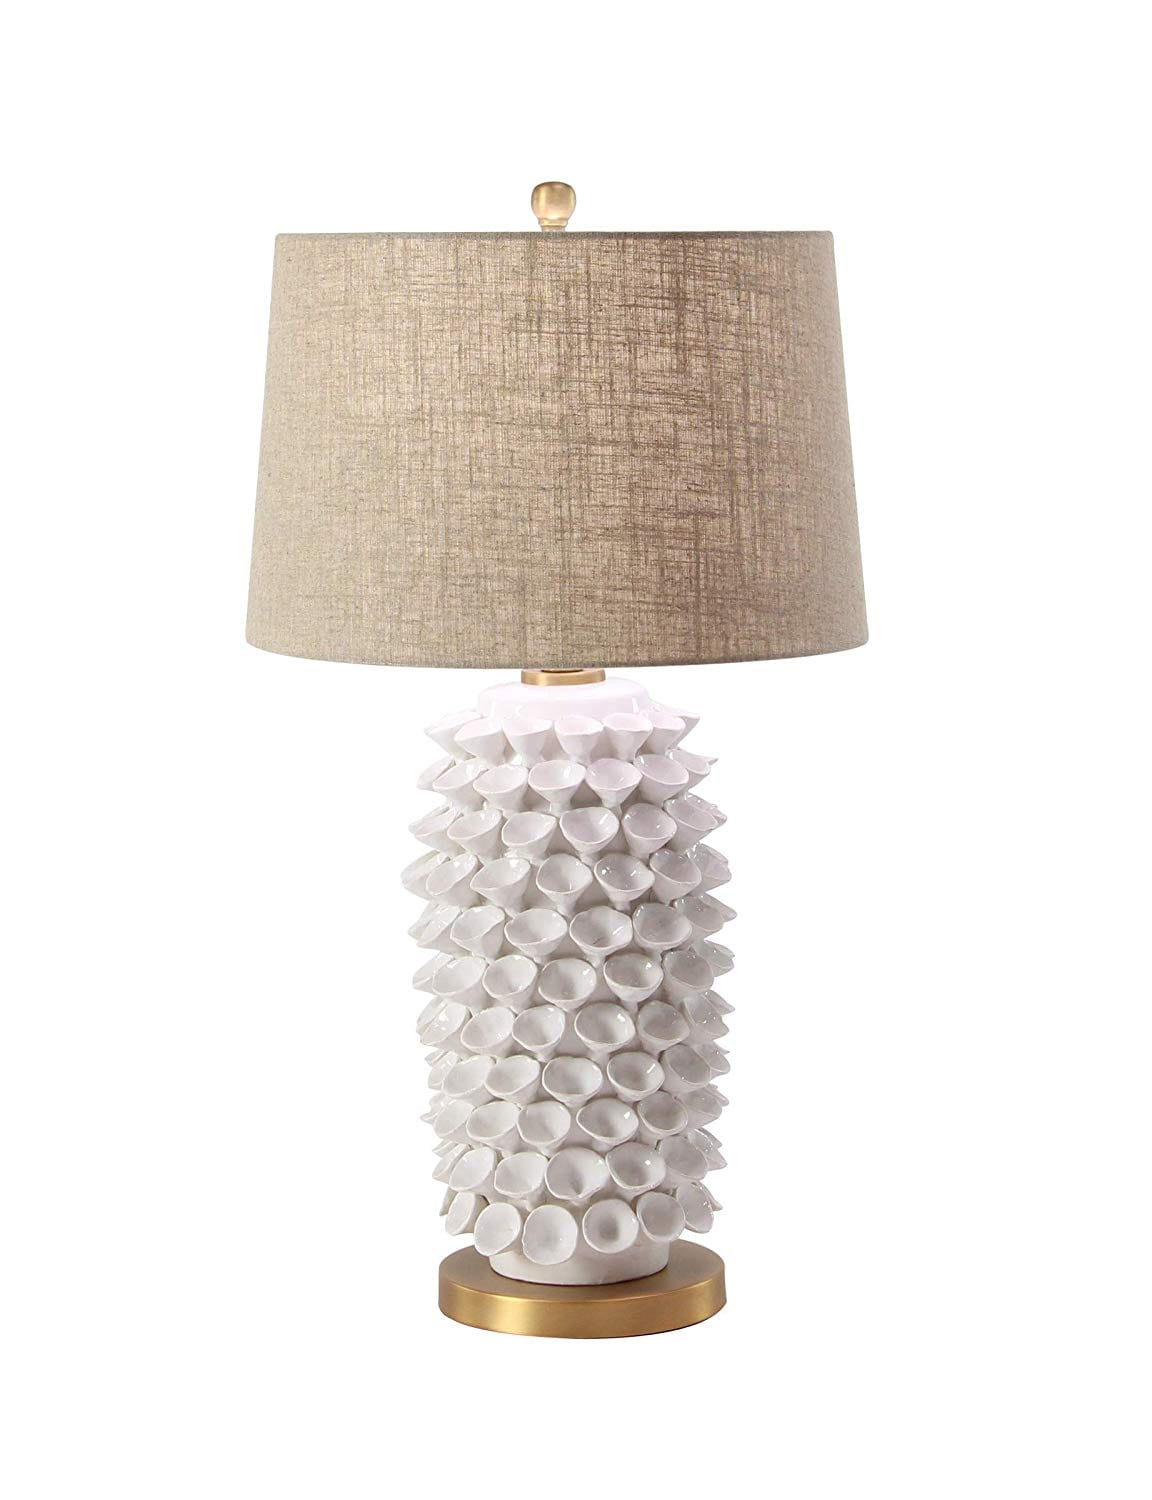 Deco 79 Table Lamps, Large, Tan, White, Black